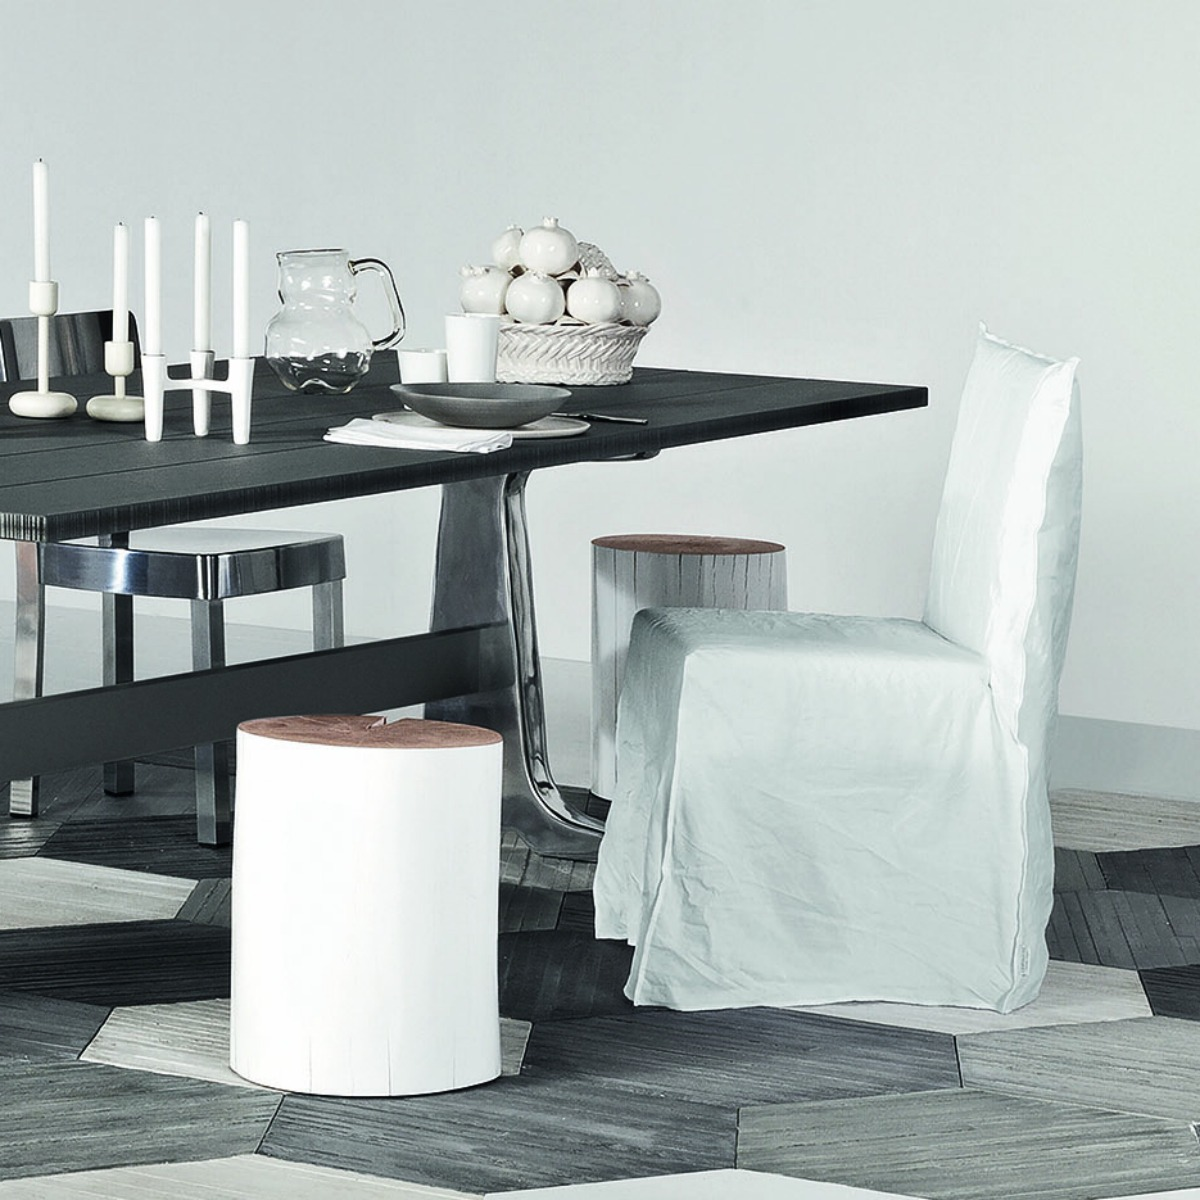 gervasoni ghost 23 - Dining chair without arms. White linen removable cover.